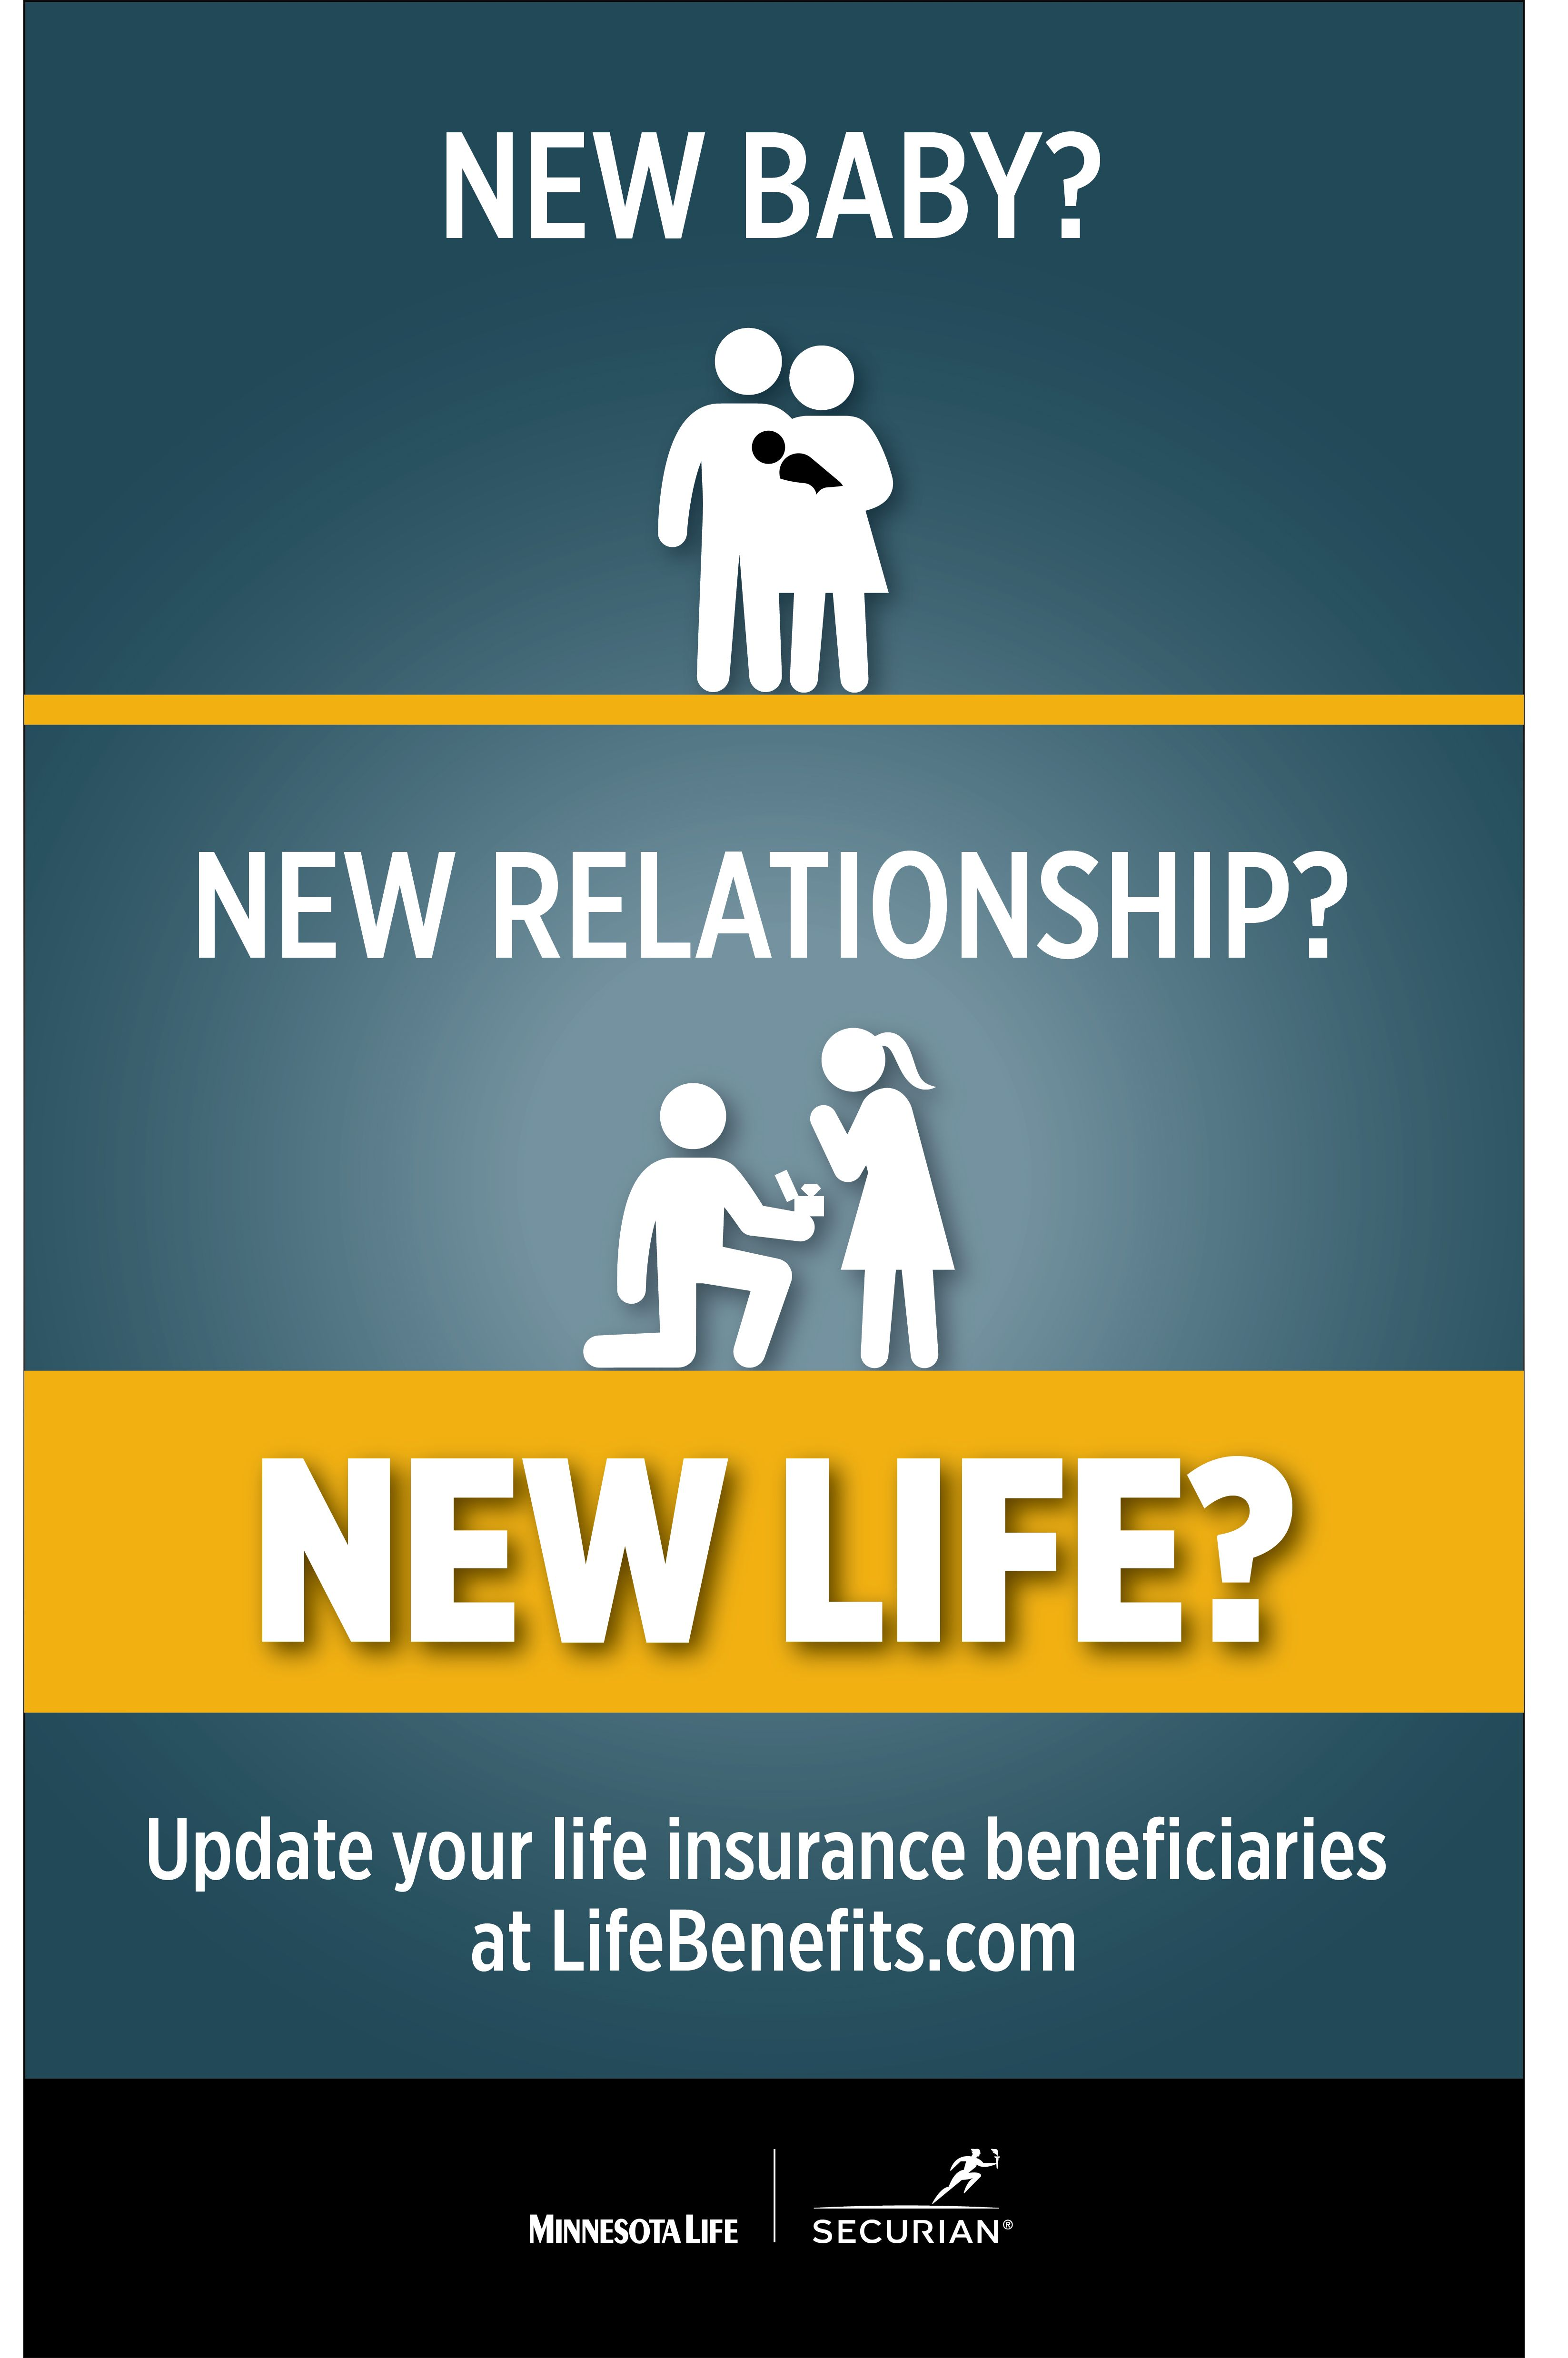 From Minnesota Life Insurance Company Life Insurance Beneficiary